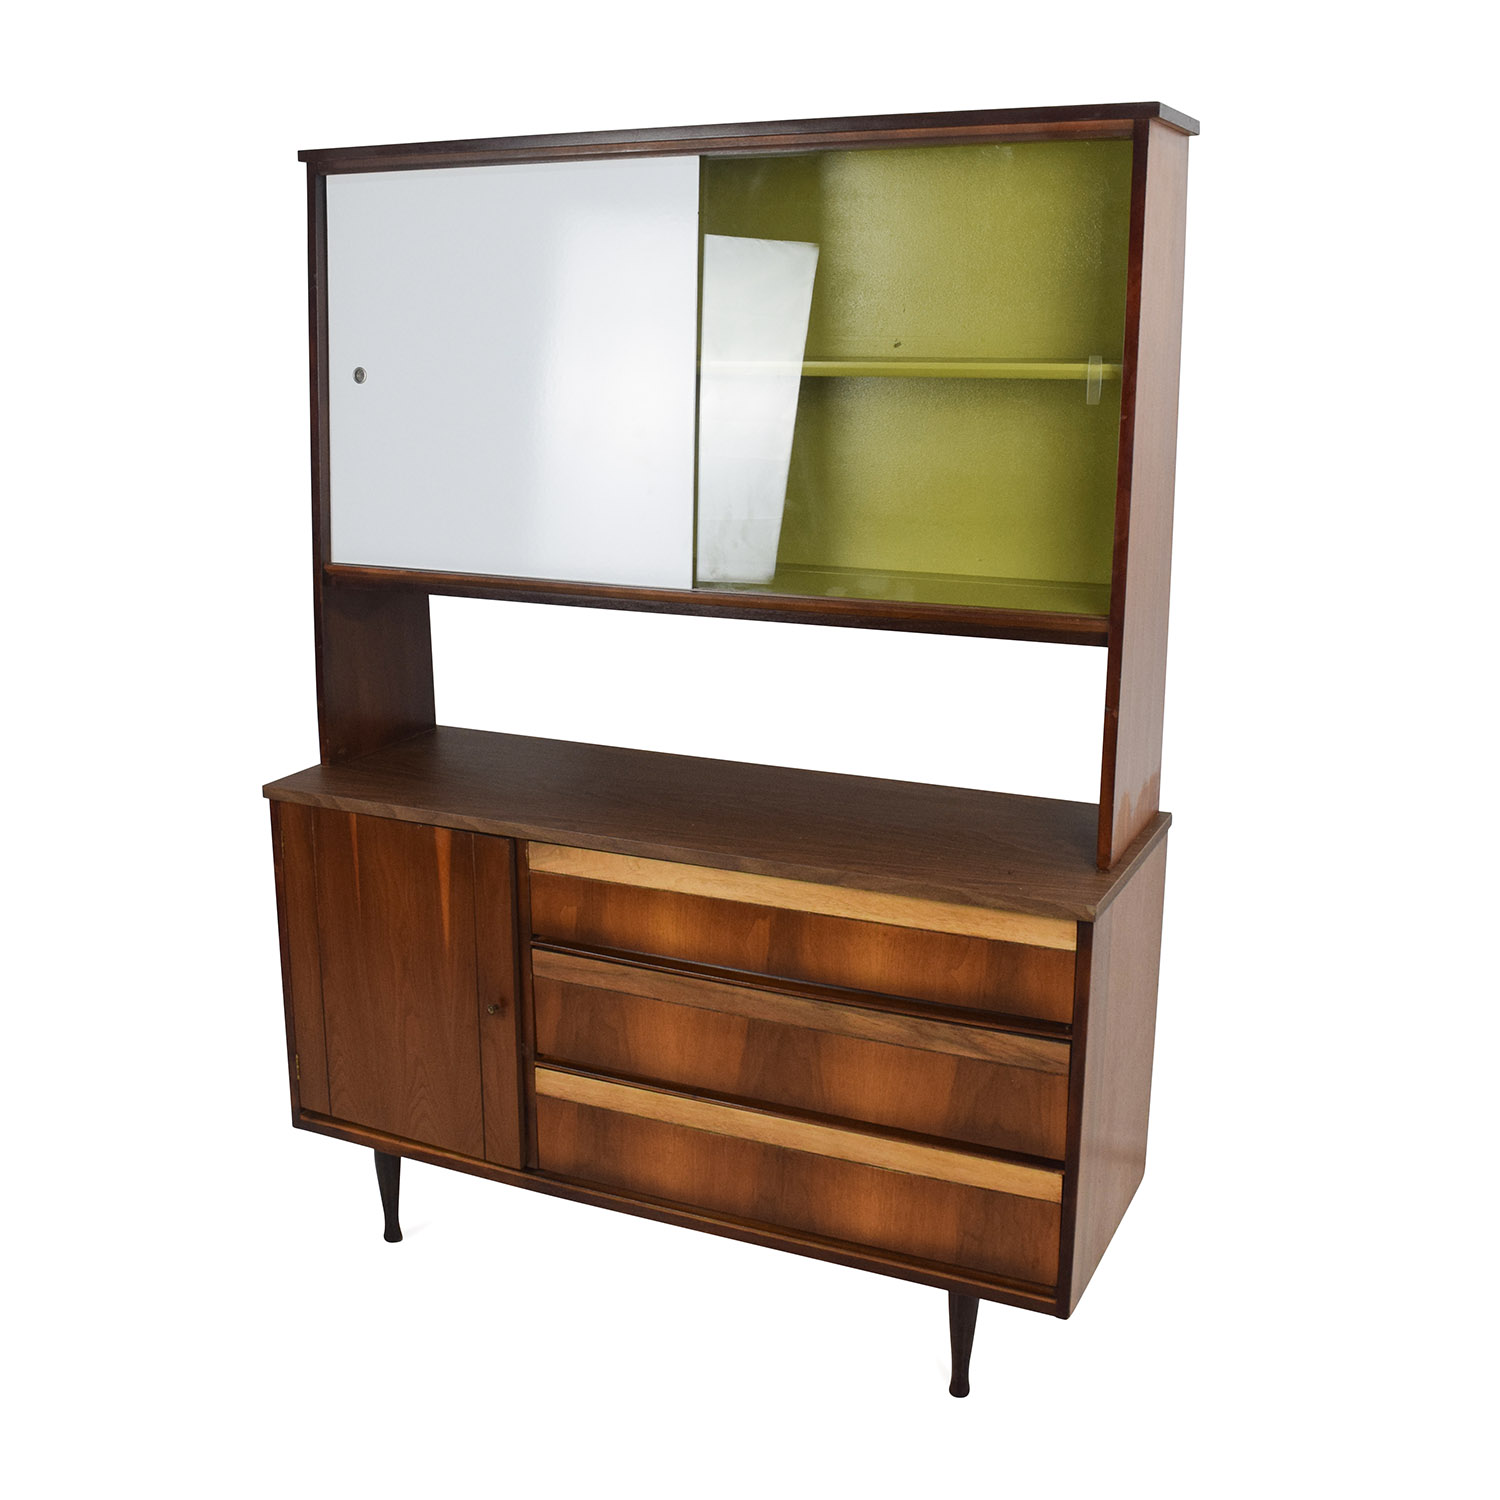 Mid Century Credenza For Sale: Unknown Brand Vintage Mid Century Sideboard